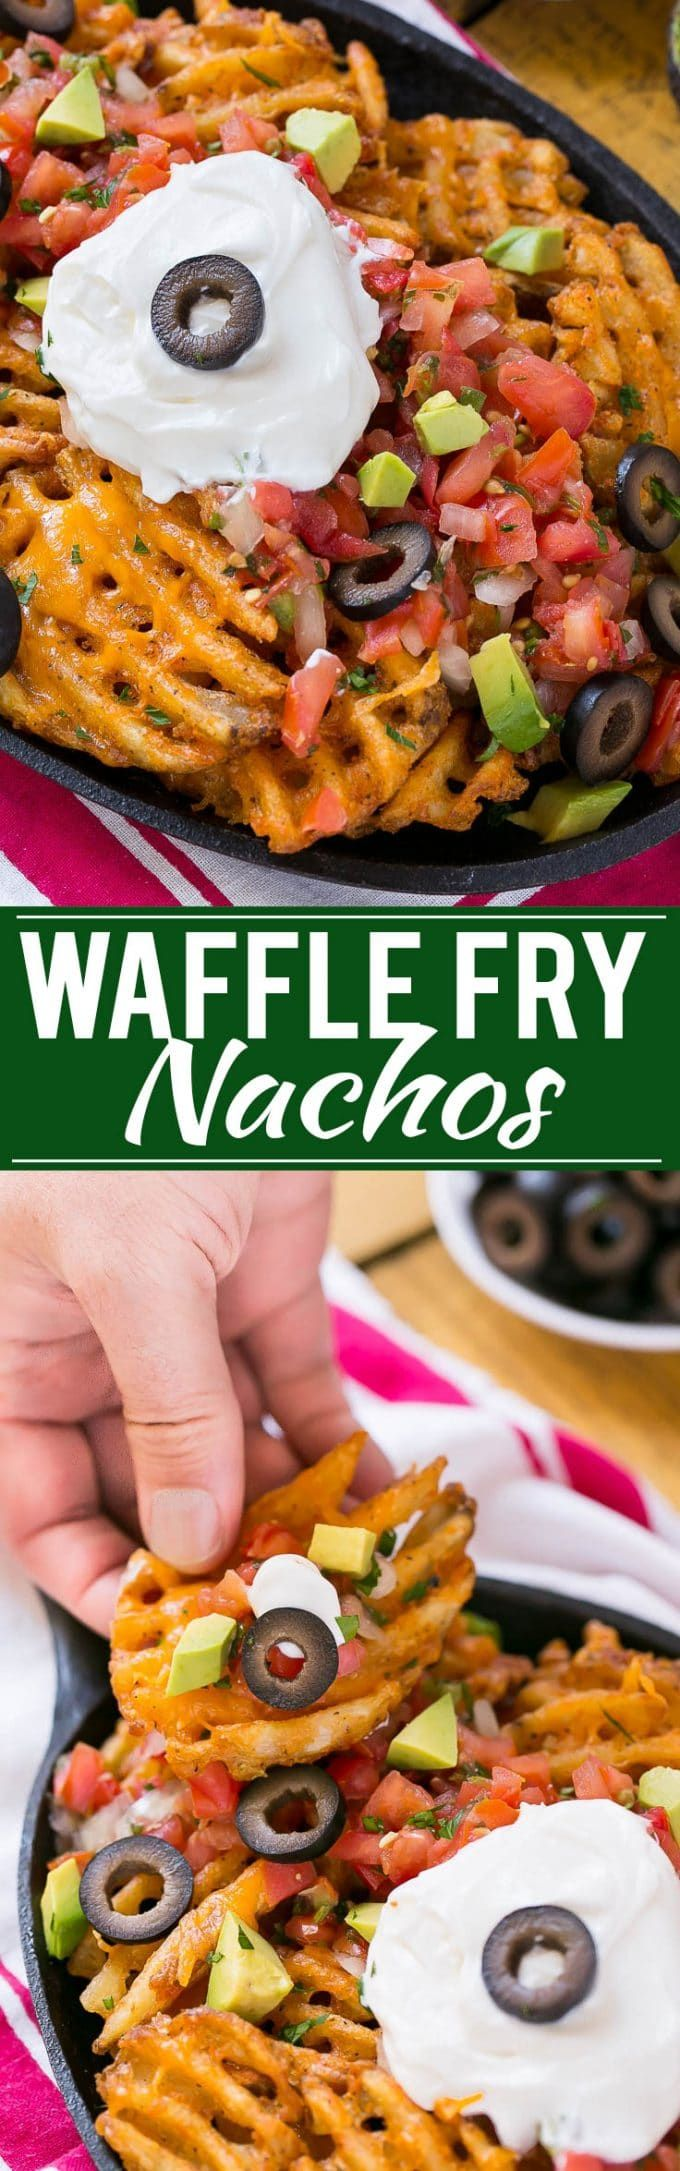 Waffle fries are smothered in nacho toppings for a fun and delicious snack. #Ad